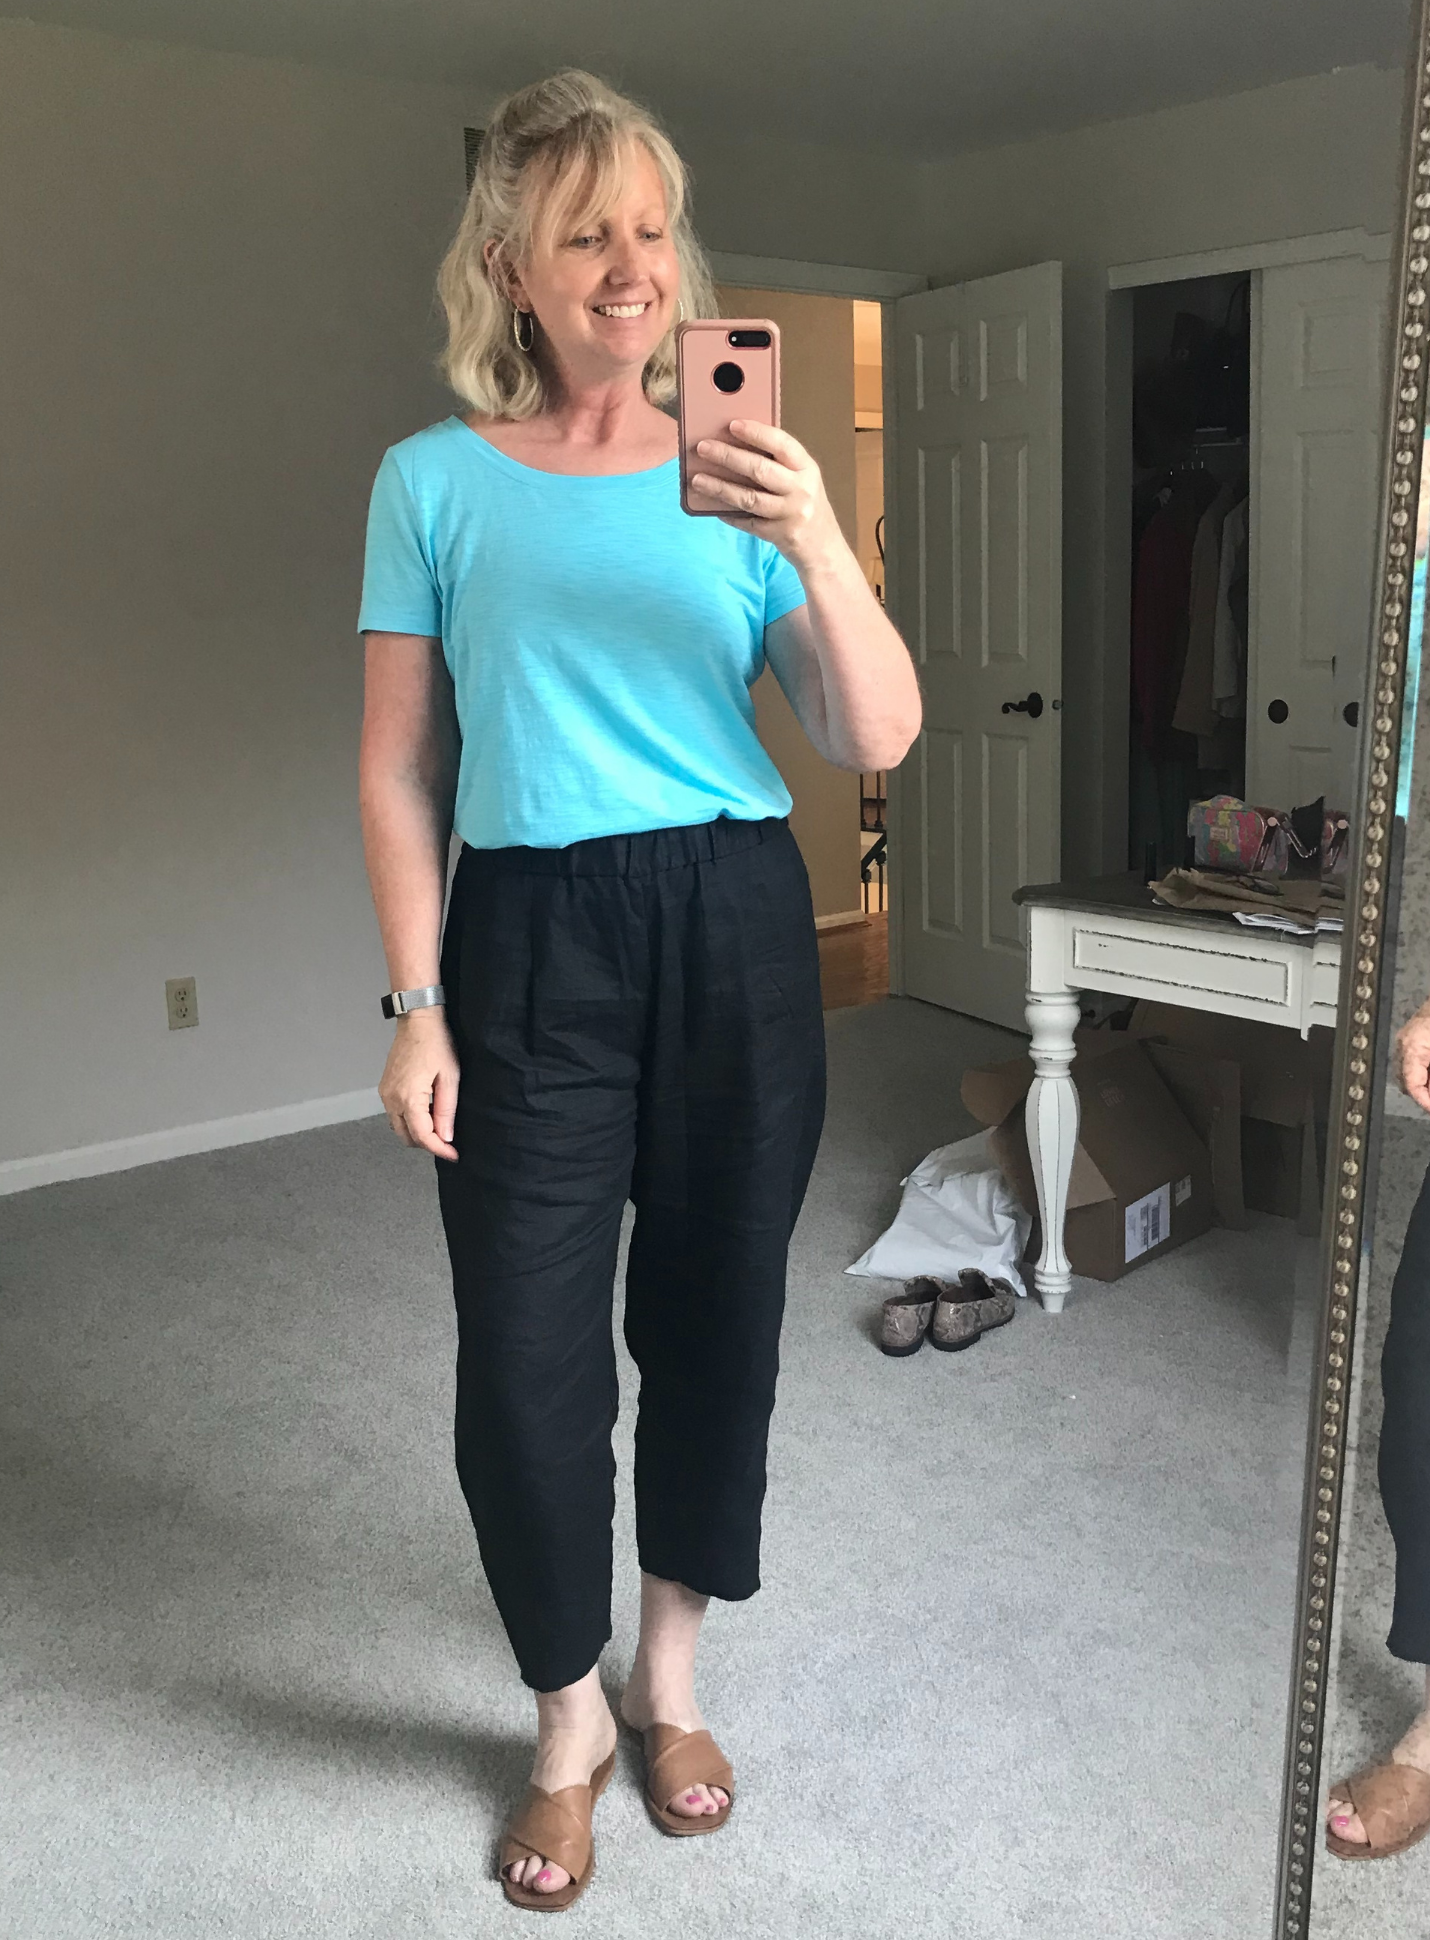 How I Really Dressed for My Day 014